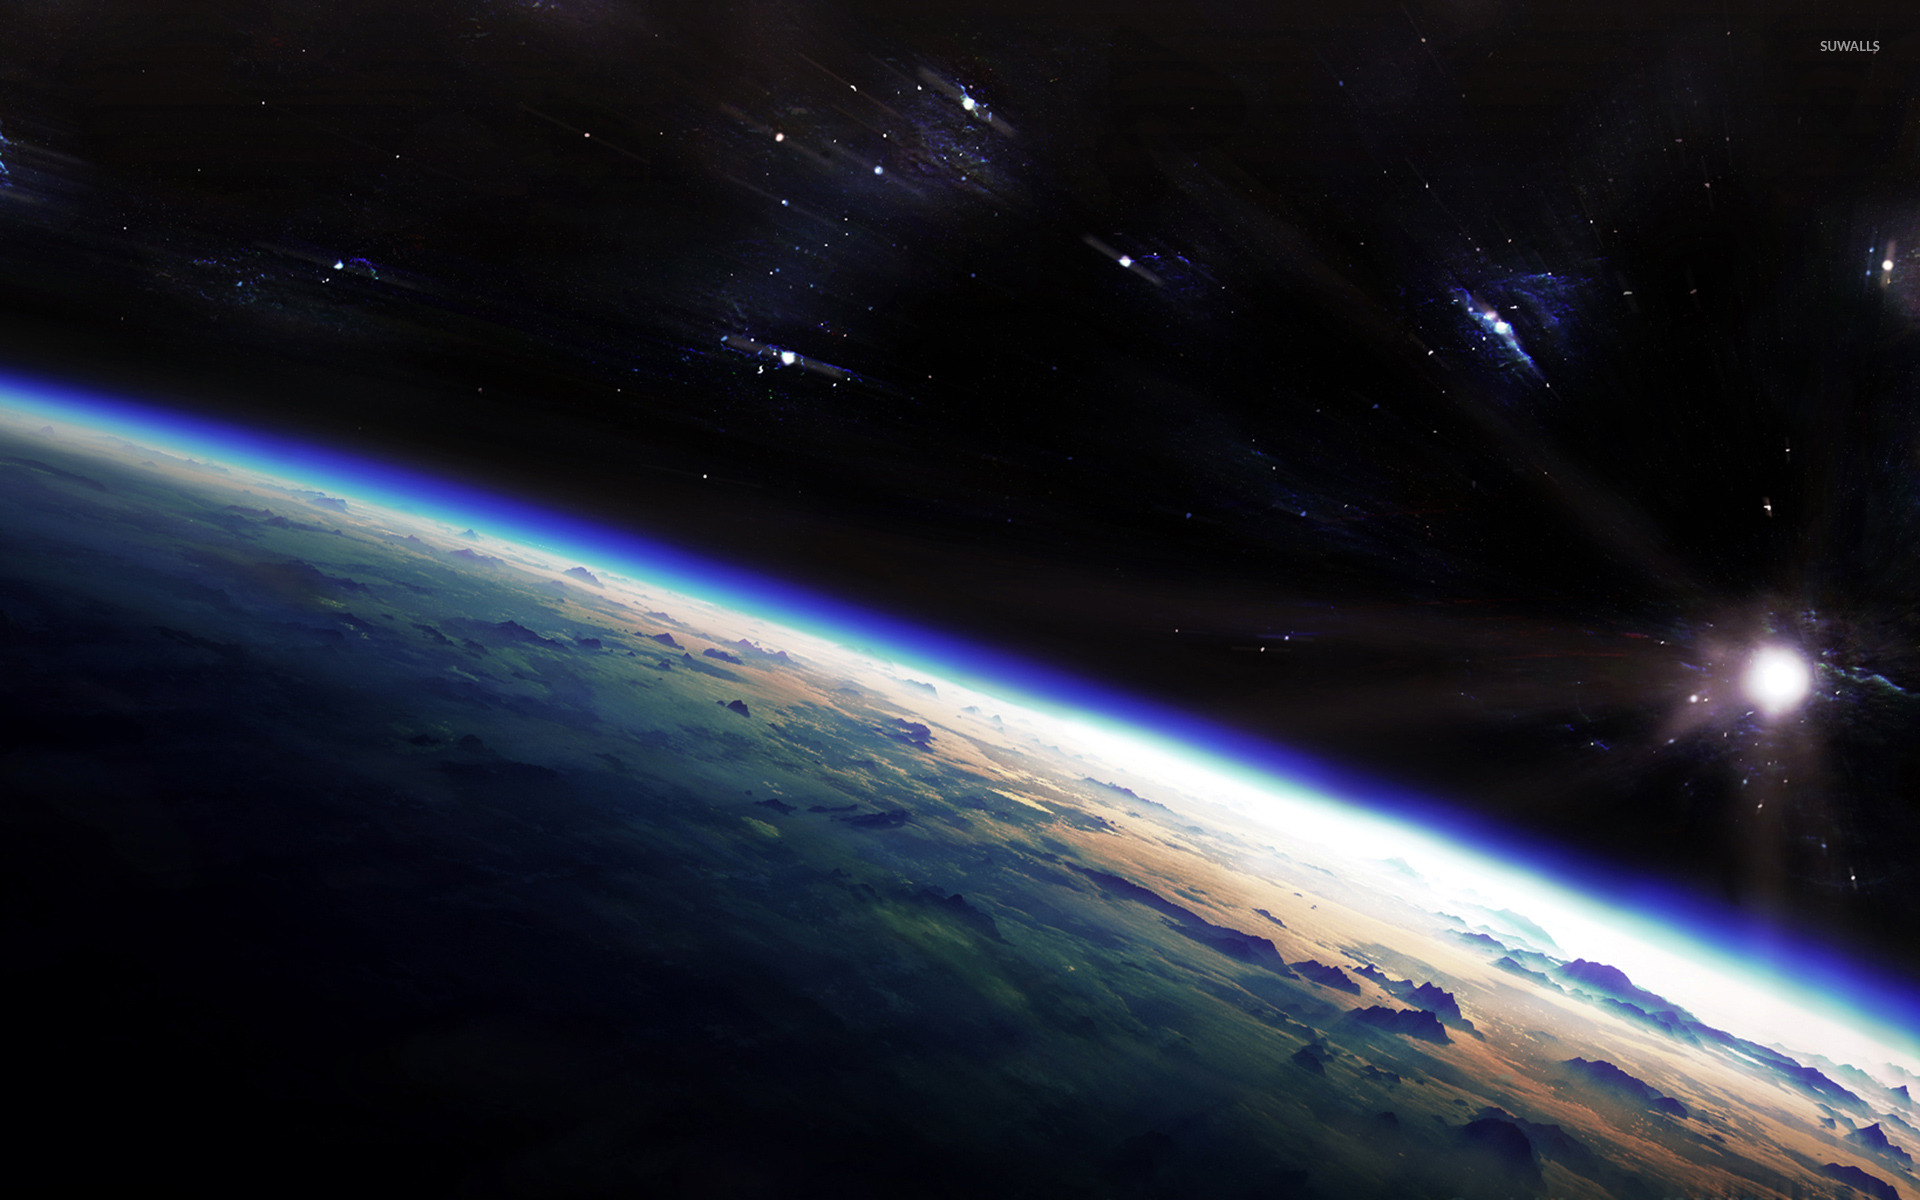 sunrise from space hd - photo #27